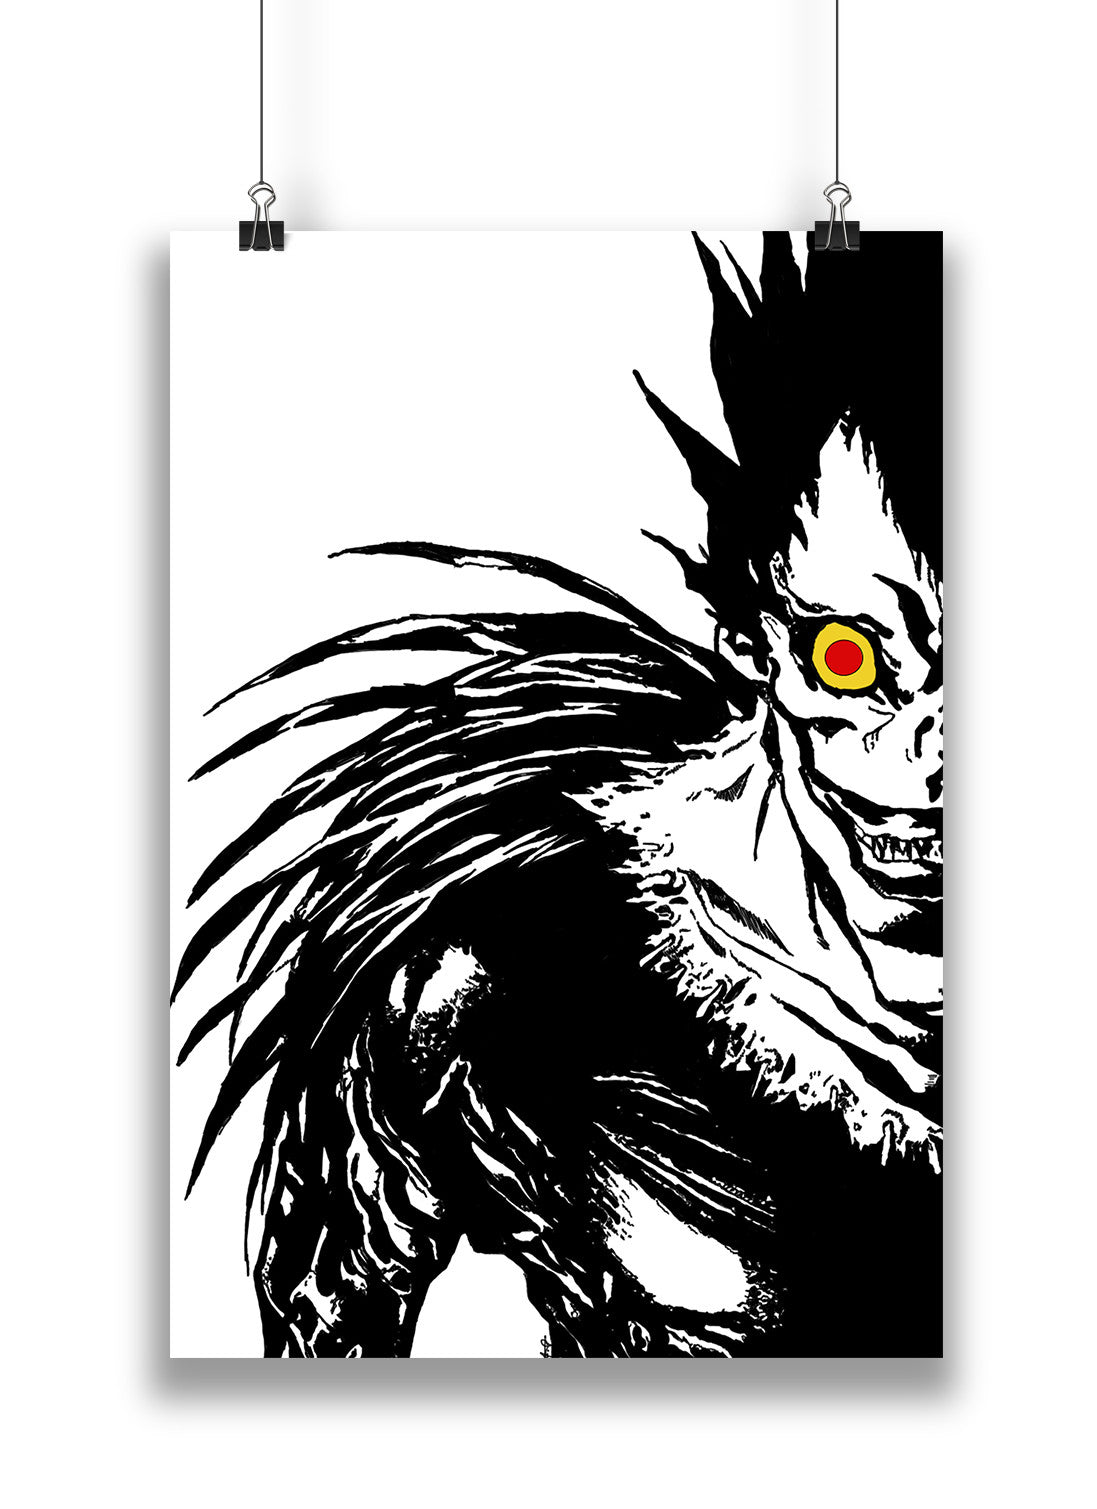 Anime Ryuk From Death Note Poaster In India By Sillypunter